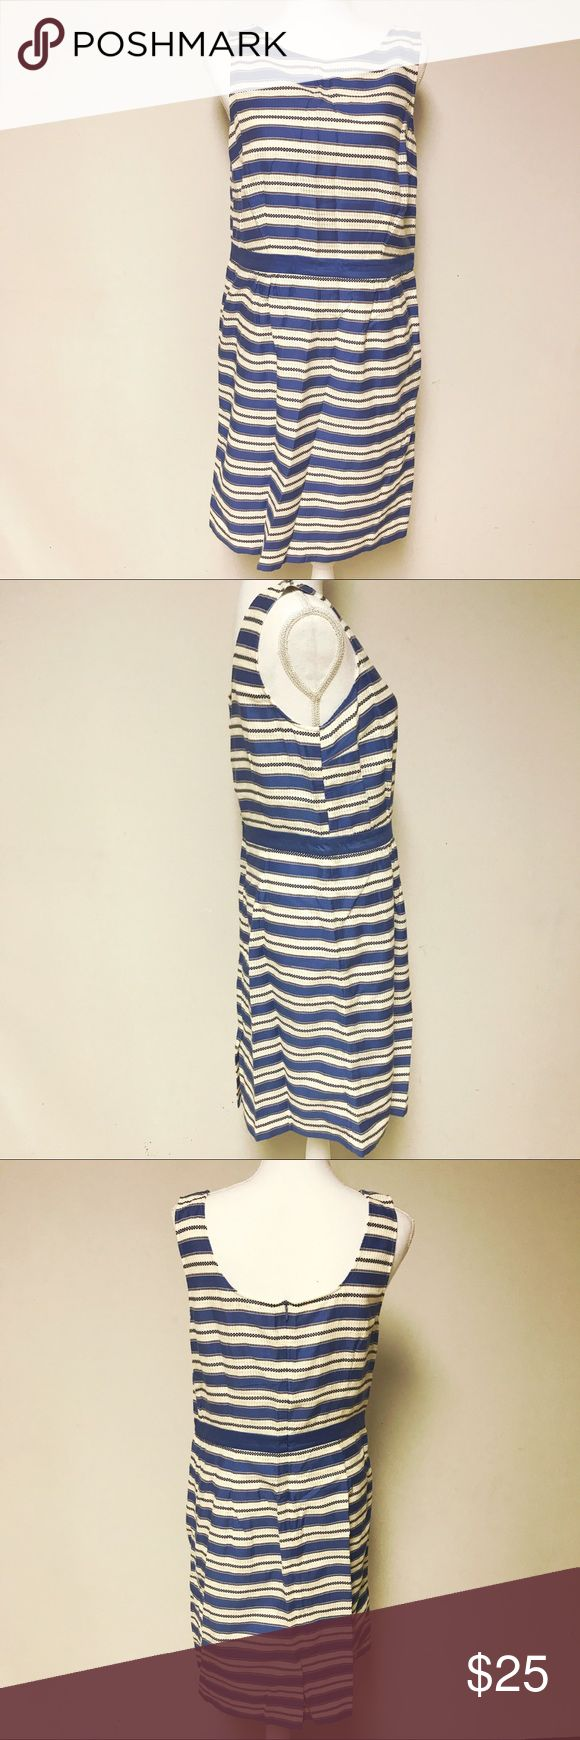 • Boden Striped Cotton Blue and White Dress • •	Perfect for casual wear 	•	Dress is 1 time worn, Clean Condition, No rips, tears, and/or stains, excellent condition  	•	Length measurement is 38 inches, armpit to armpit 19 in 	•	Fabric is 100% Cotton.   Will be freshly steamed before shipping    If you have any questions, do not hesitate to message me. Follow me for more great deals, I have a lot of designer pieces for low prices, and price is always negotiable! Boden Dresses